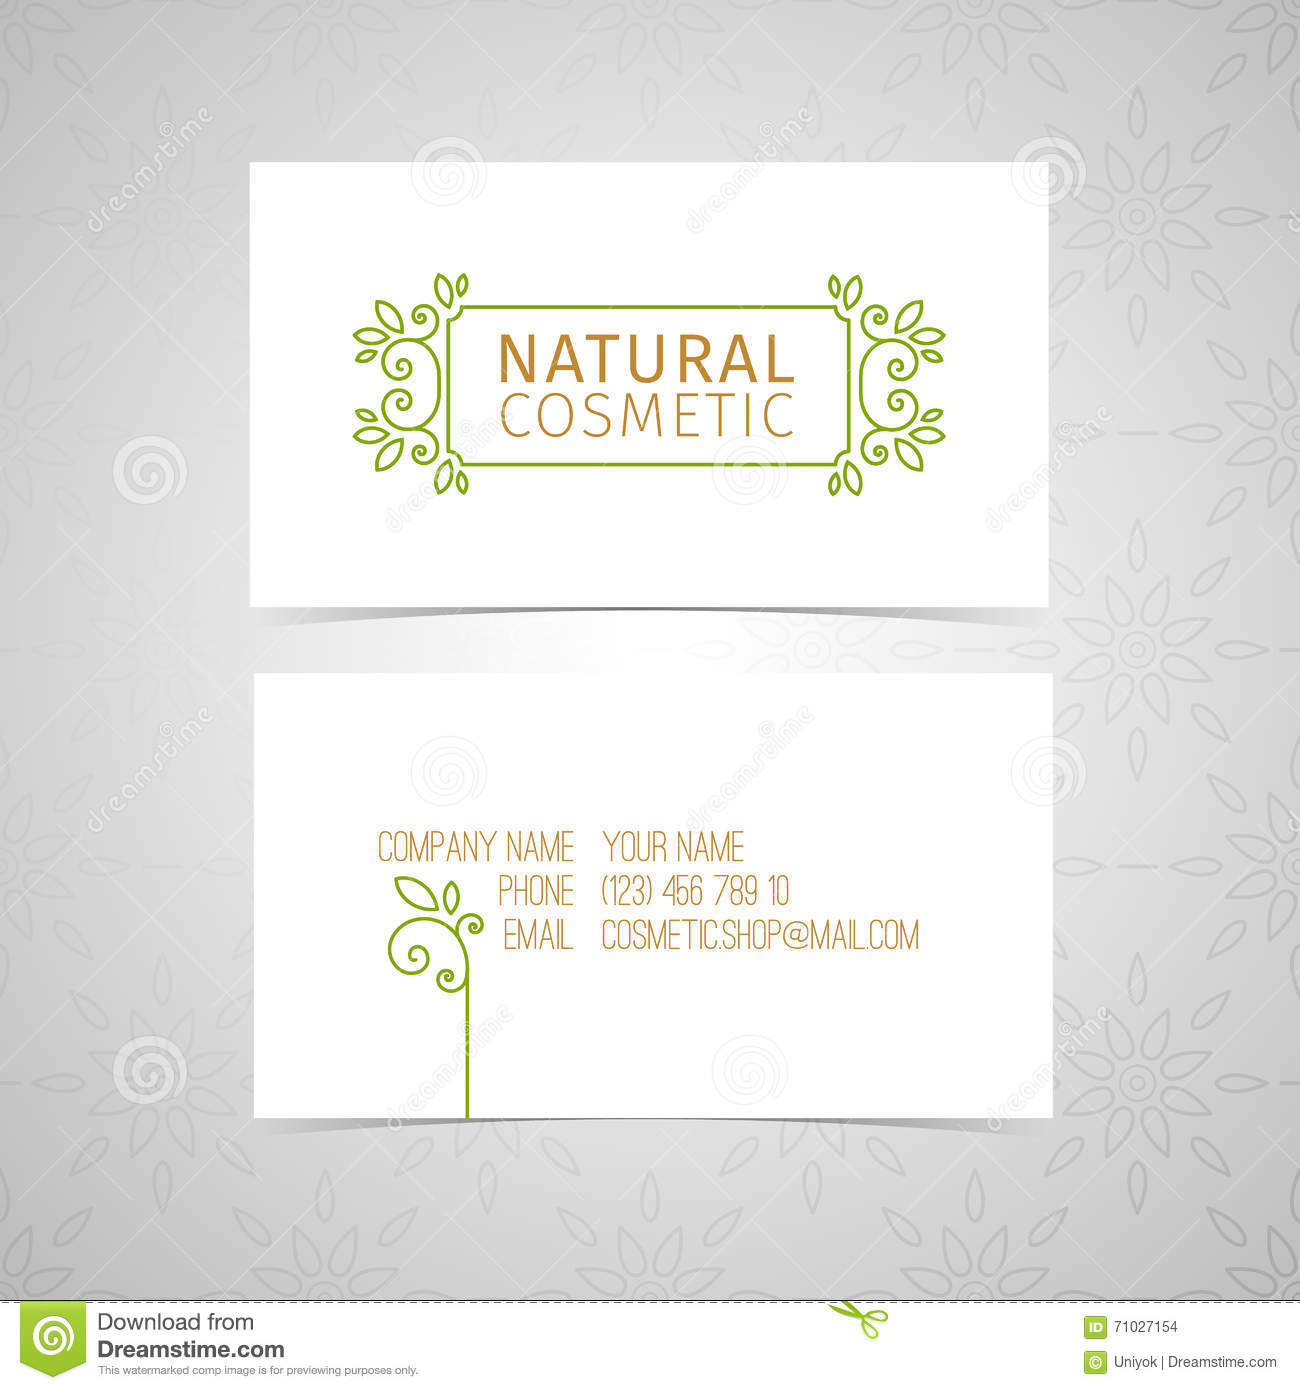 Design template for organic natural cosmetics business card with download comp colourmoves